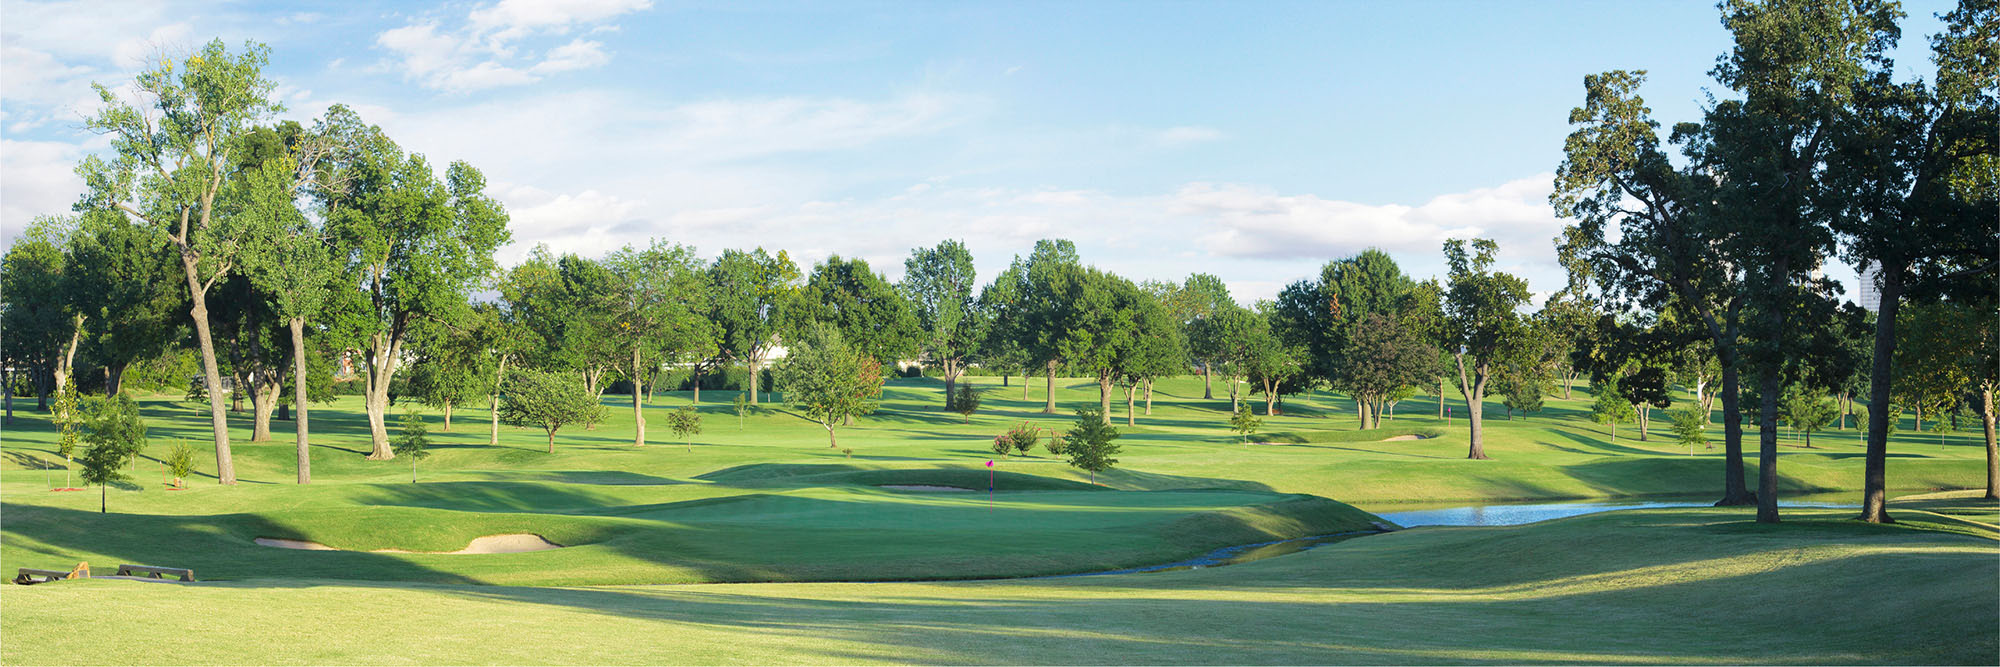 Golf Course Image - Tulsa Country Club No. 14